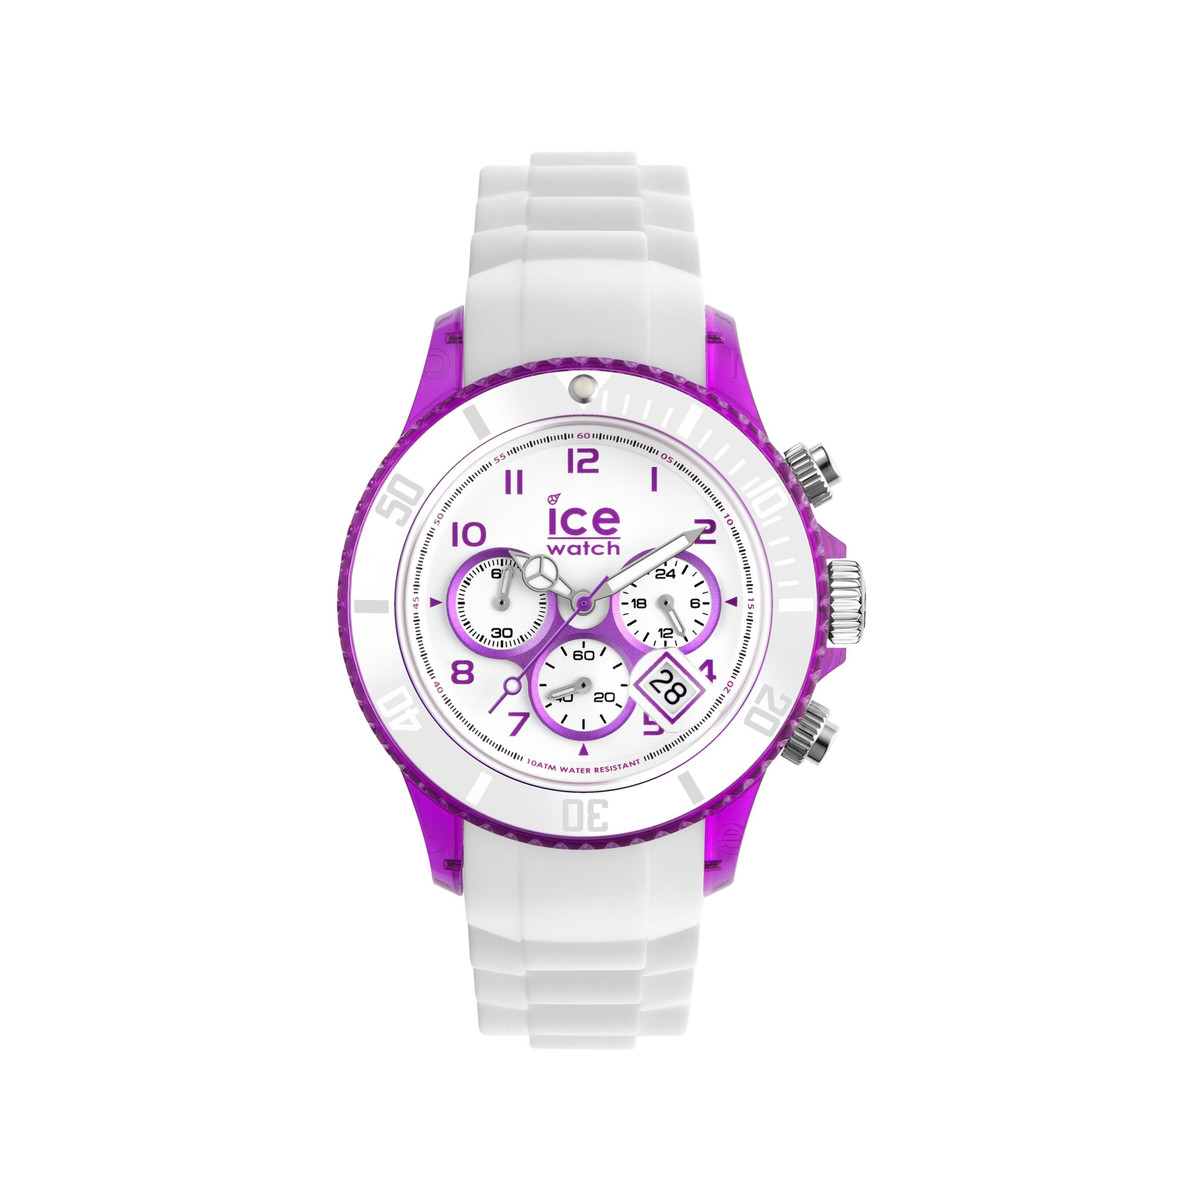 Montre Ice watch mixte chronographe silicone blanc